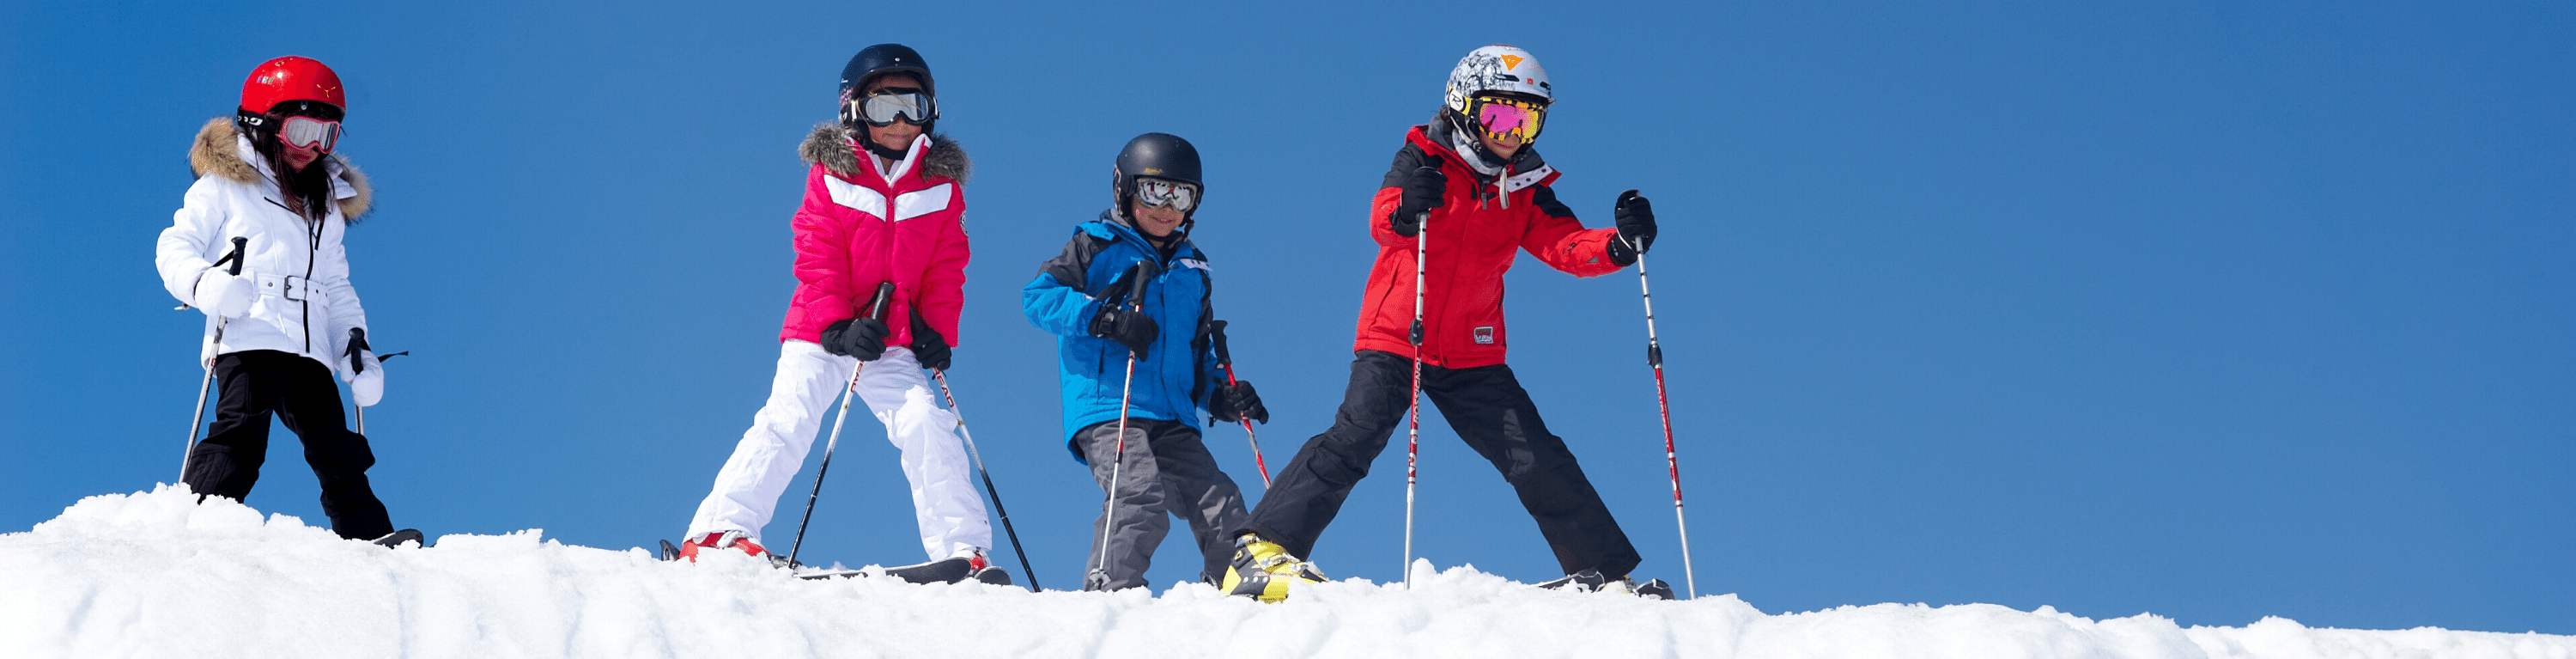 Children Skiing - Alpine Angels Blog Header